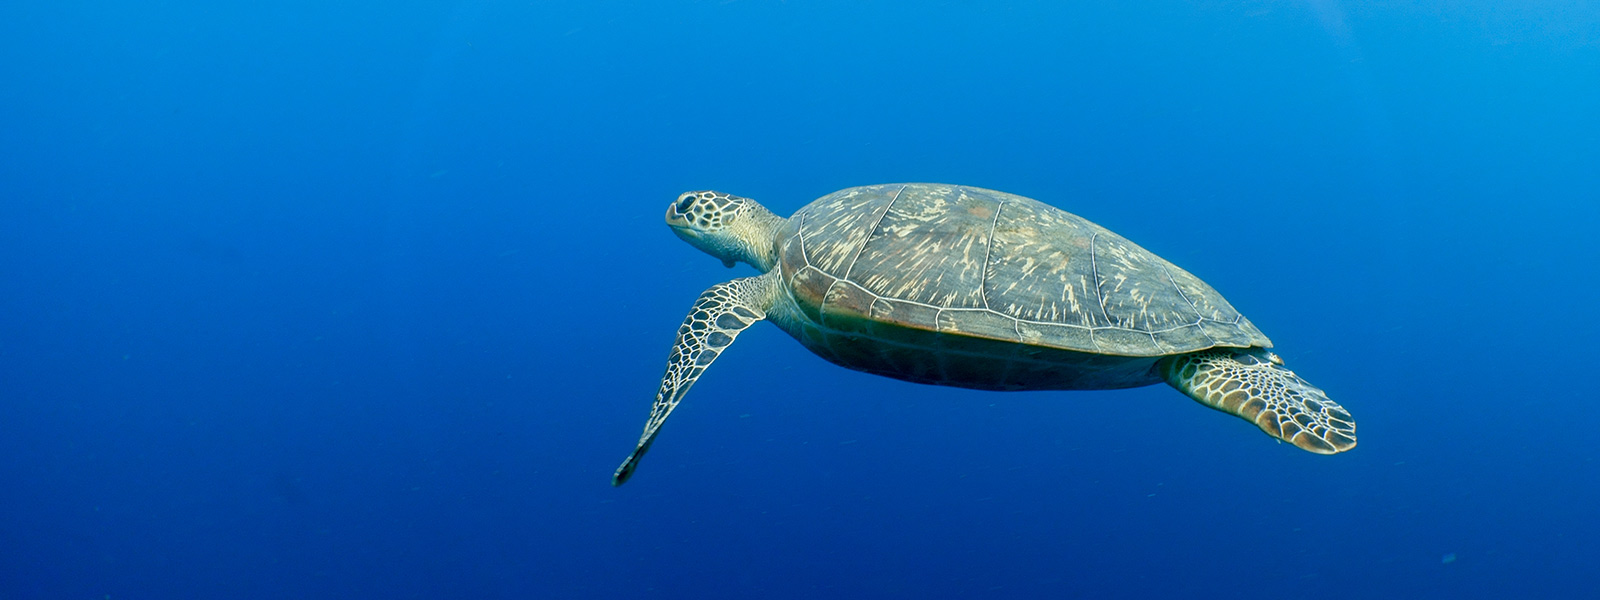 Maldives Green Sea Turtle